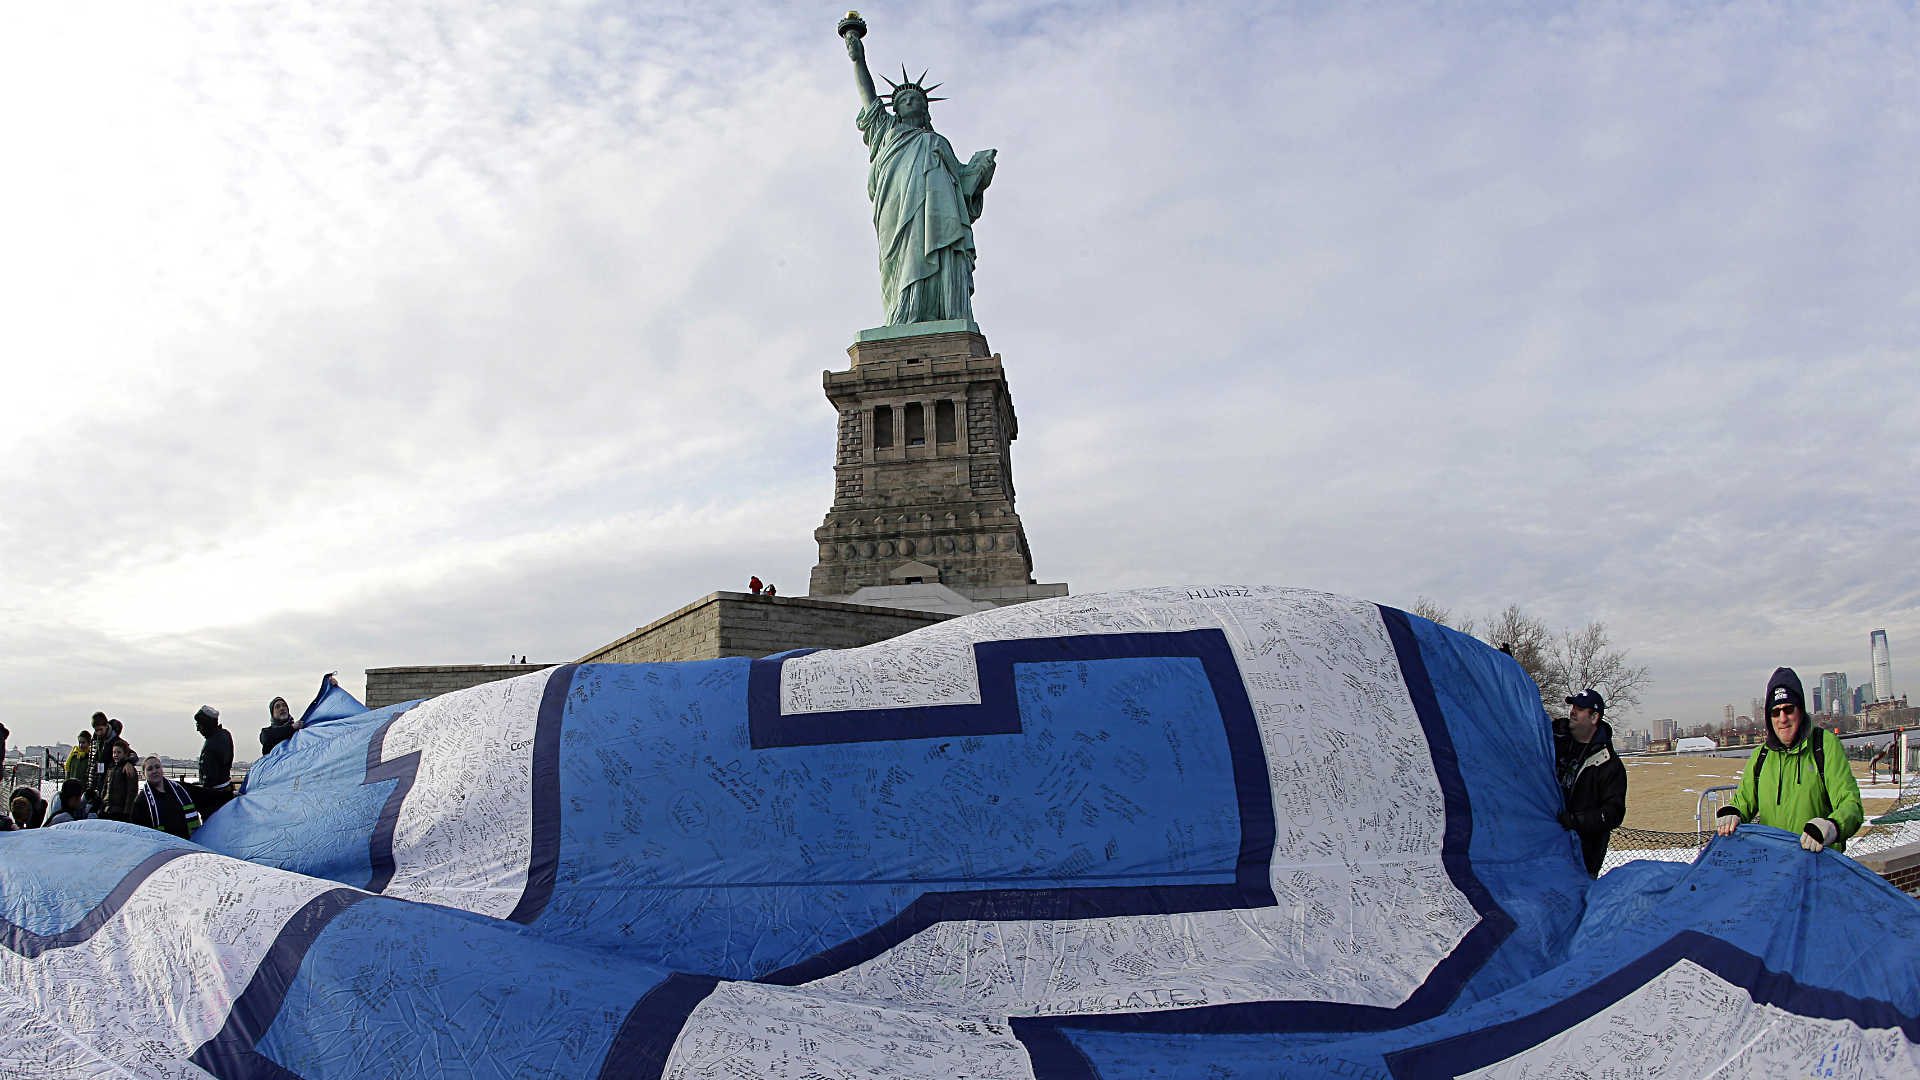 Seahawks-fans-Super-Bowl-48-nyc-ap-FTR